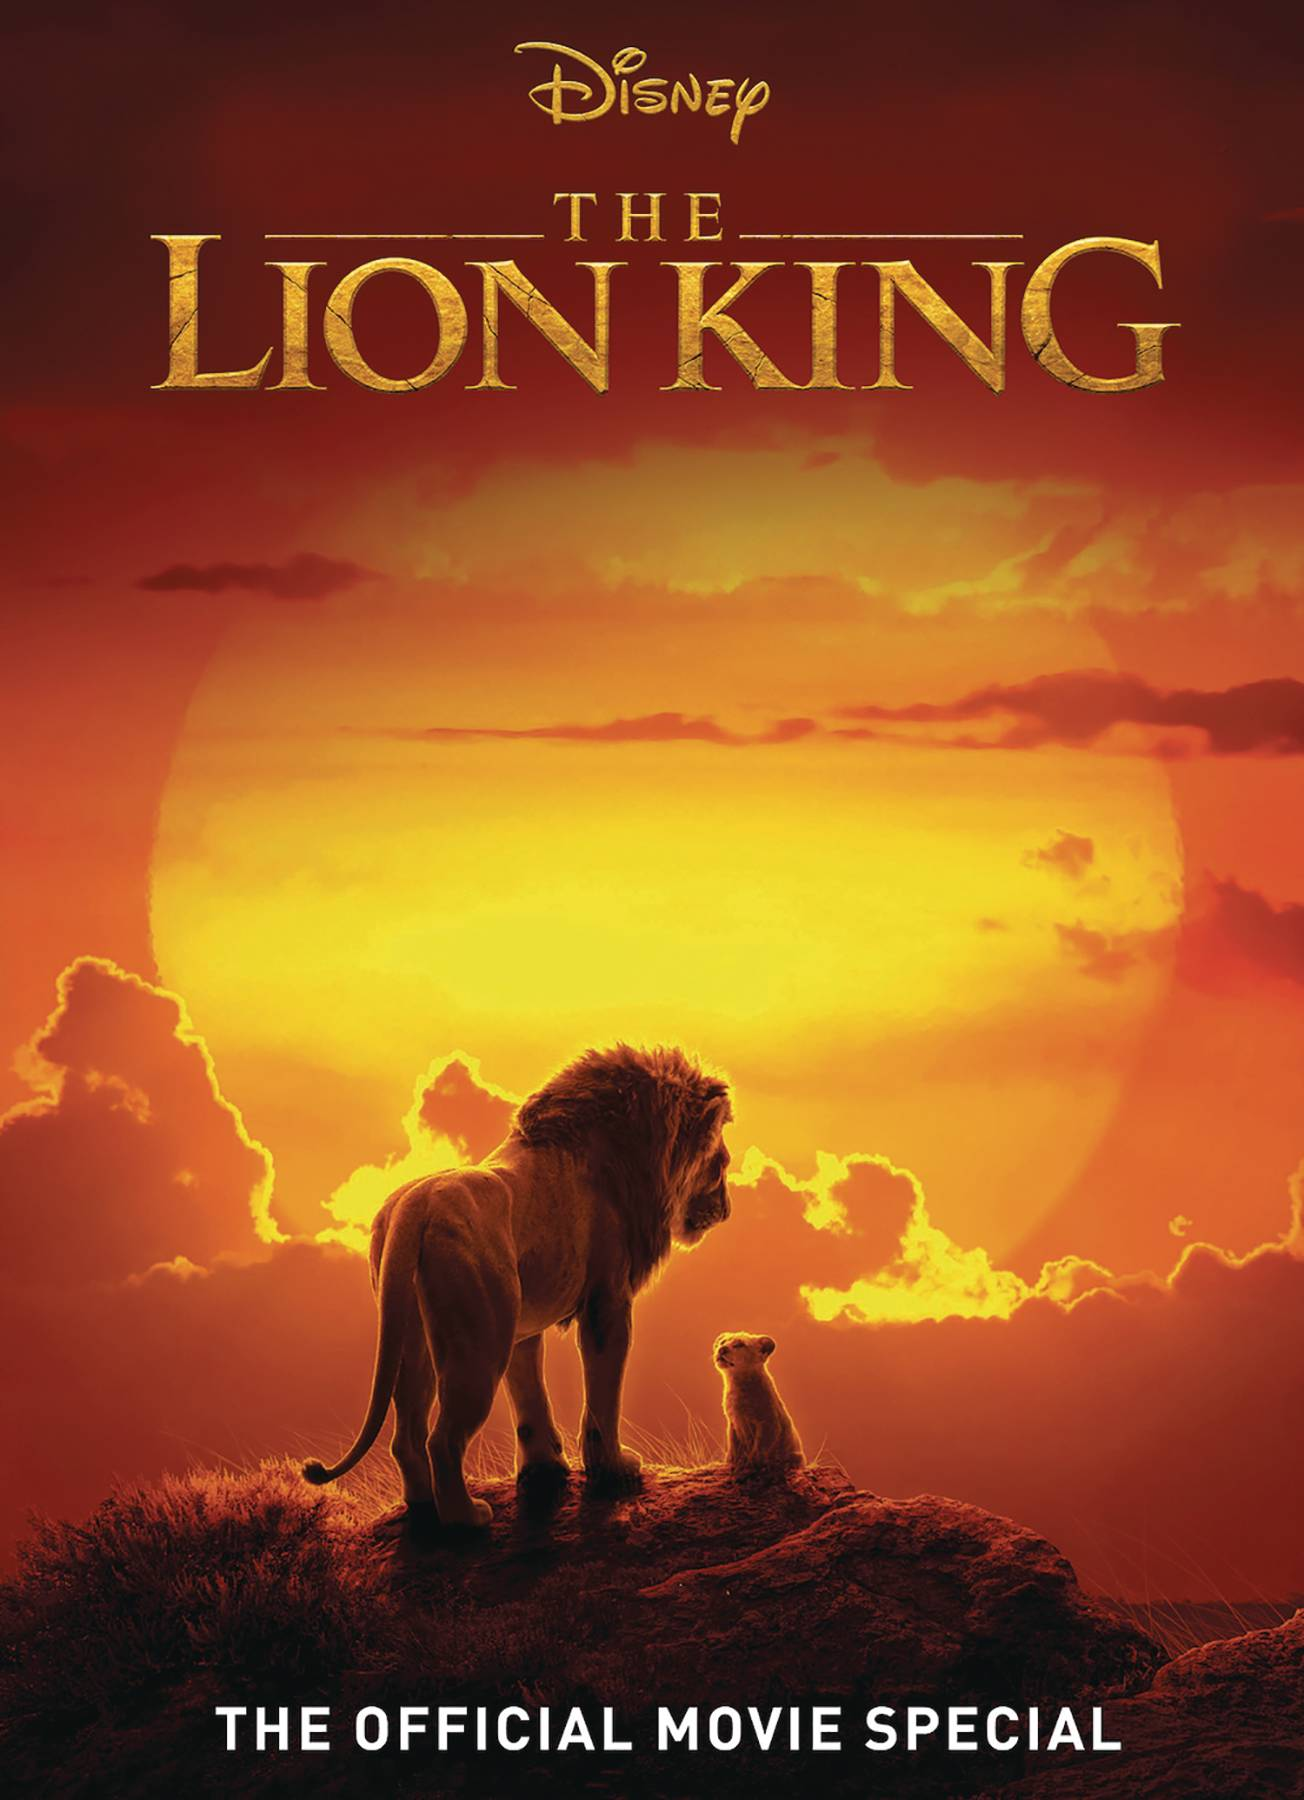 DISNEY LION KING OFF MOVIE SPECIAL HC.jpg